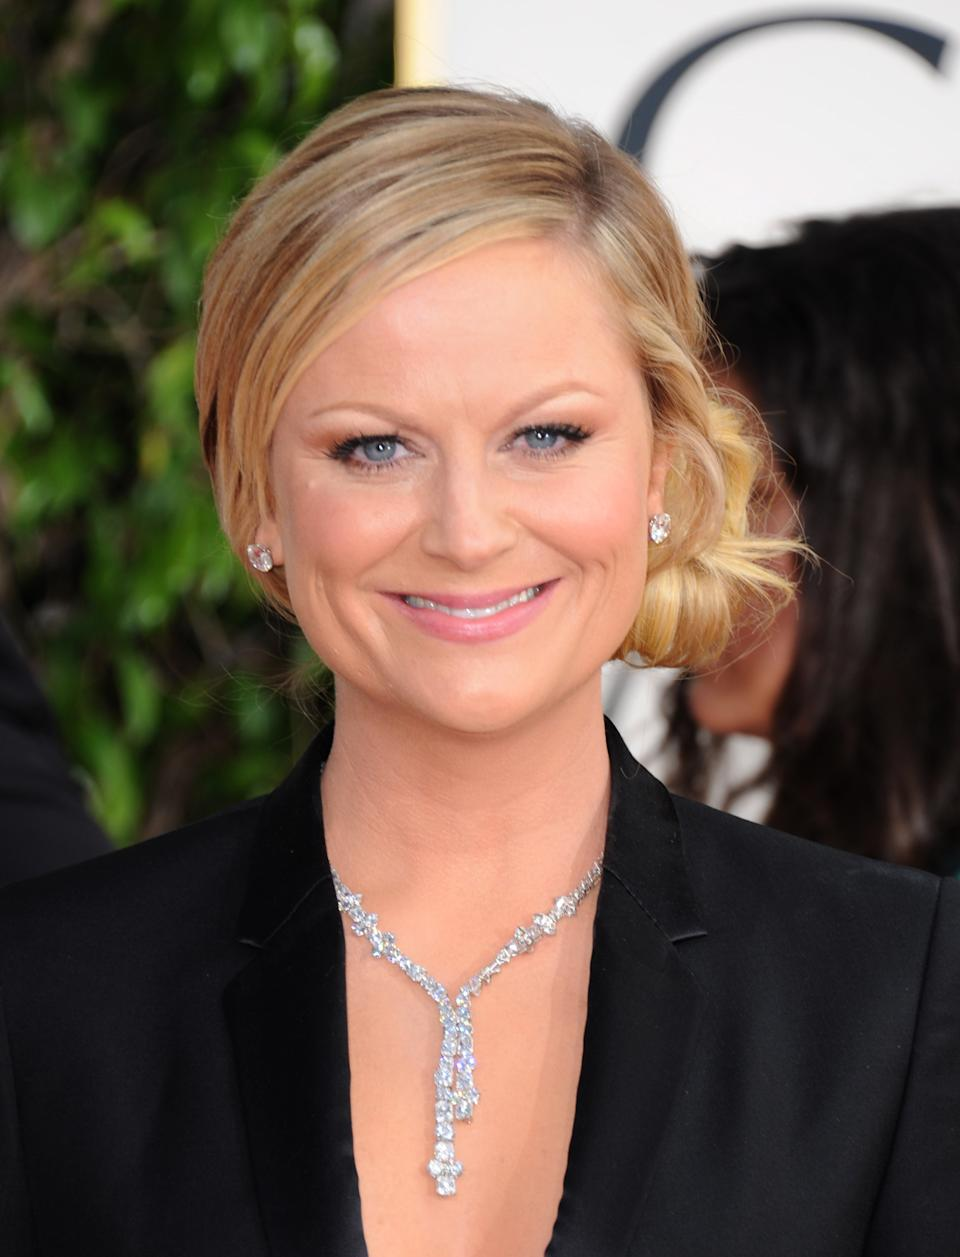 Host Amy Poehler arrives at the 70th Annual Golden Globe Awards at the Beverly Hilton Hotel on Sunday Jan. 13, 2013, in Beverly Hills, Calif. (Photo by Jordan Strauss/Invision/AP)